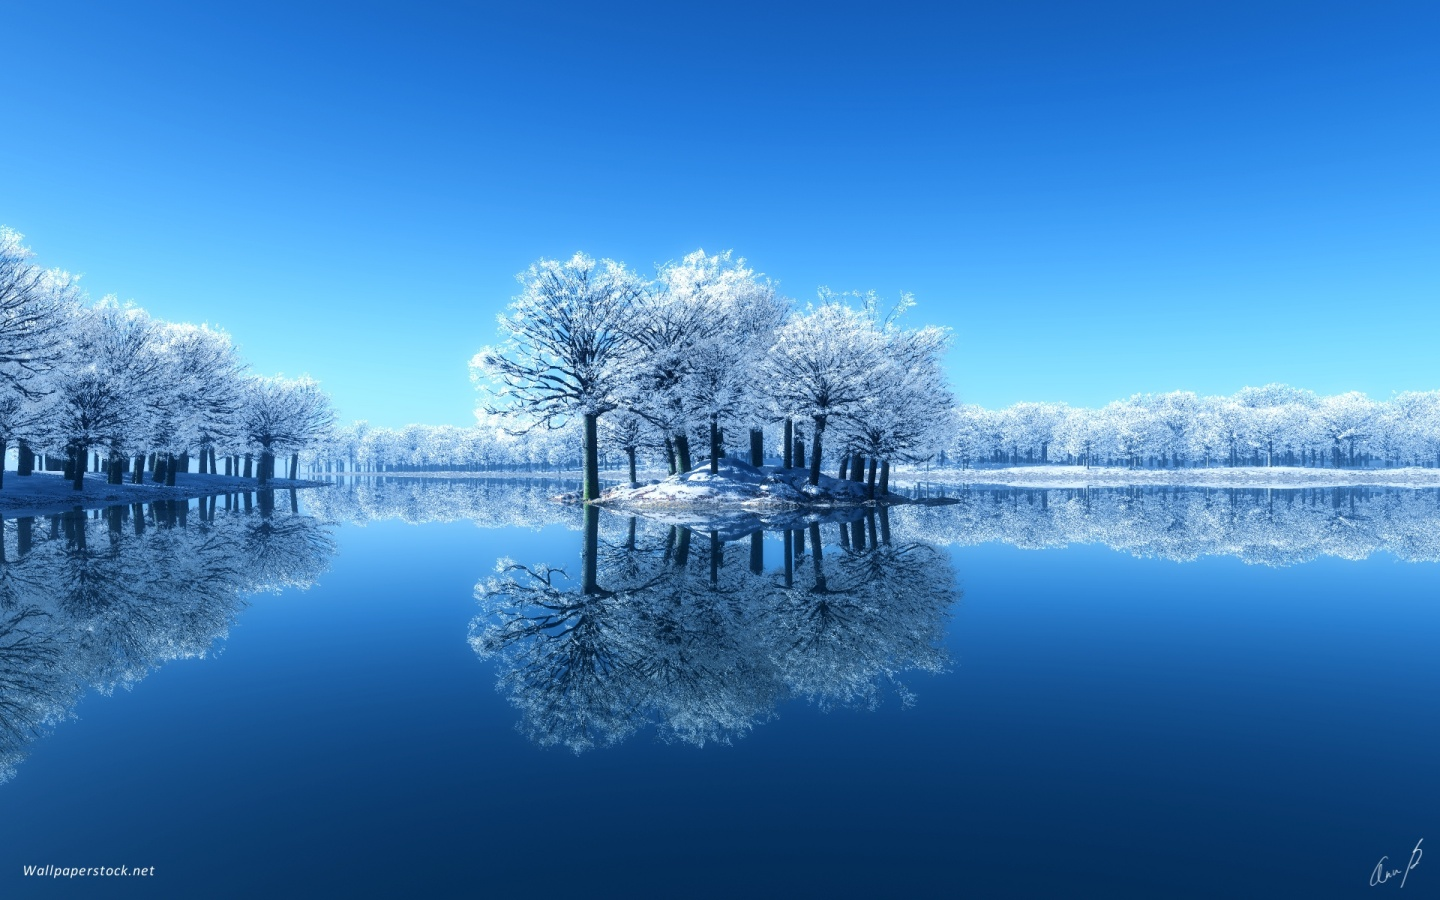 Stunning Winter Scenery